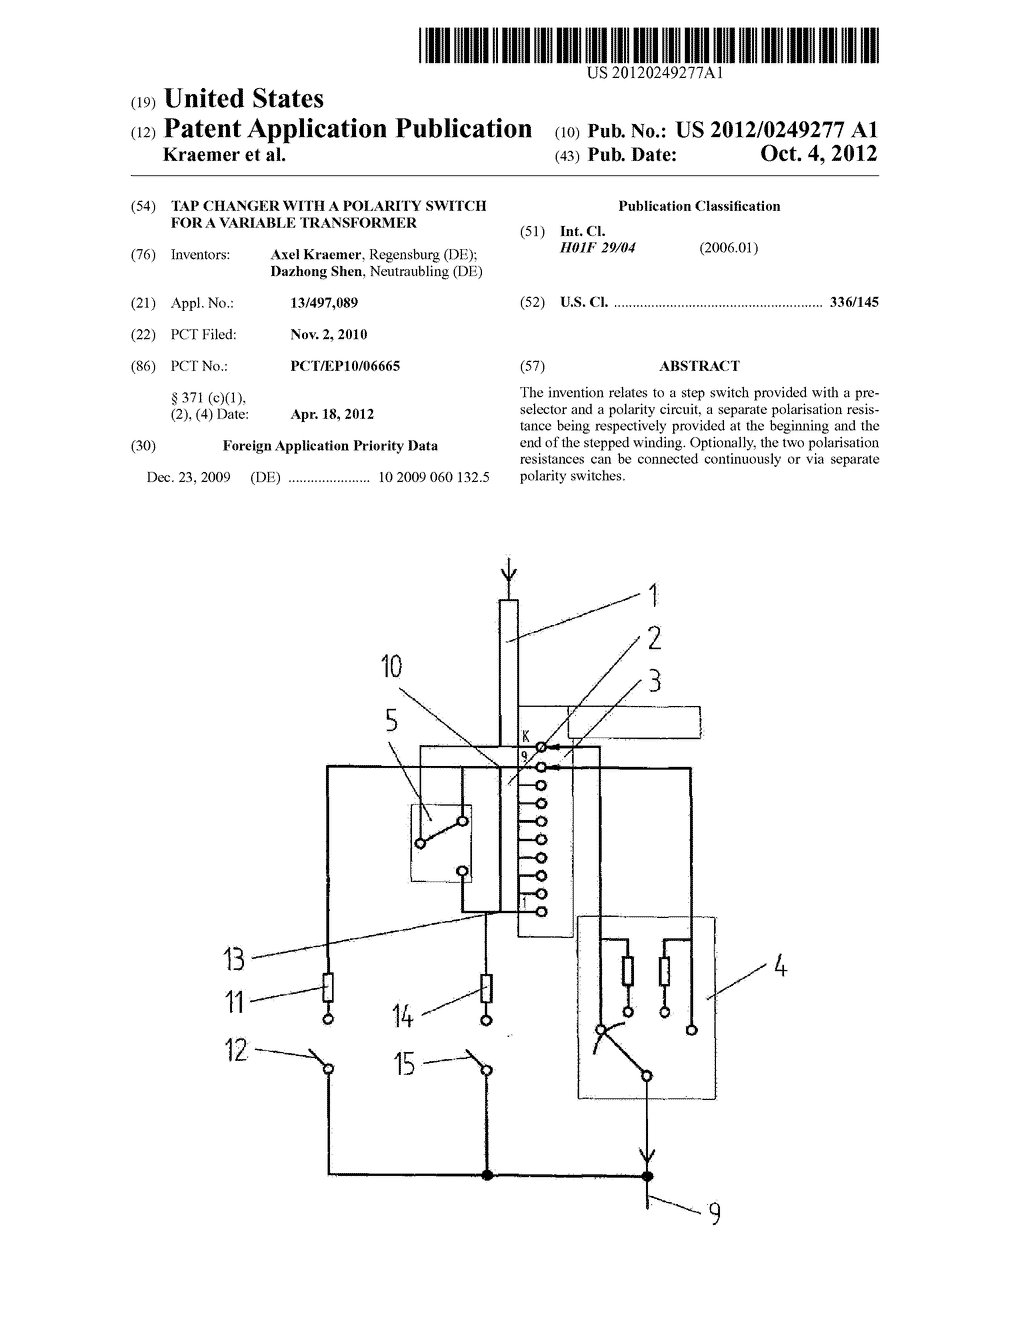 hight resolution of tap changer with a polarity switch for a variable transformer diagram schematic and image 01